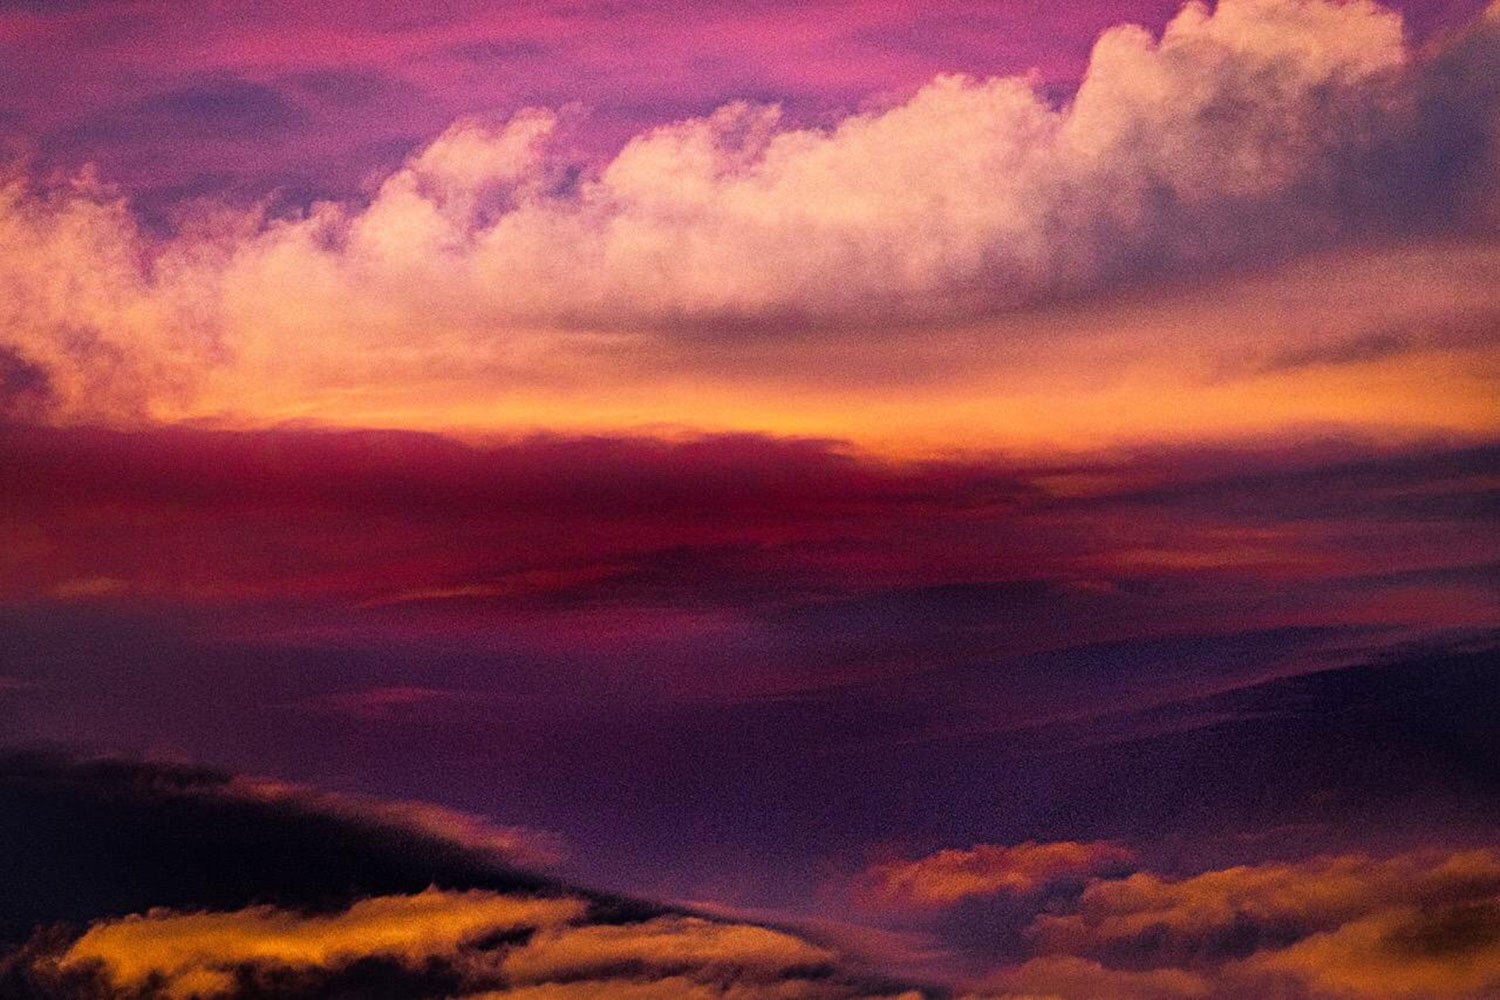 Nature Abstraction #2, Cumulus Sunset (Color Abstract Photography)